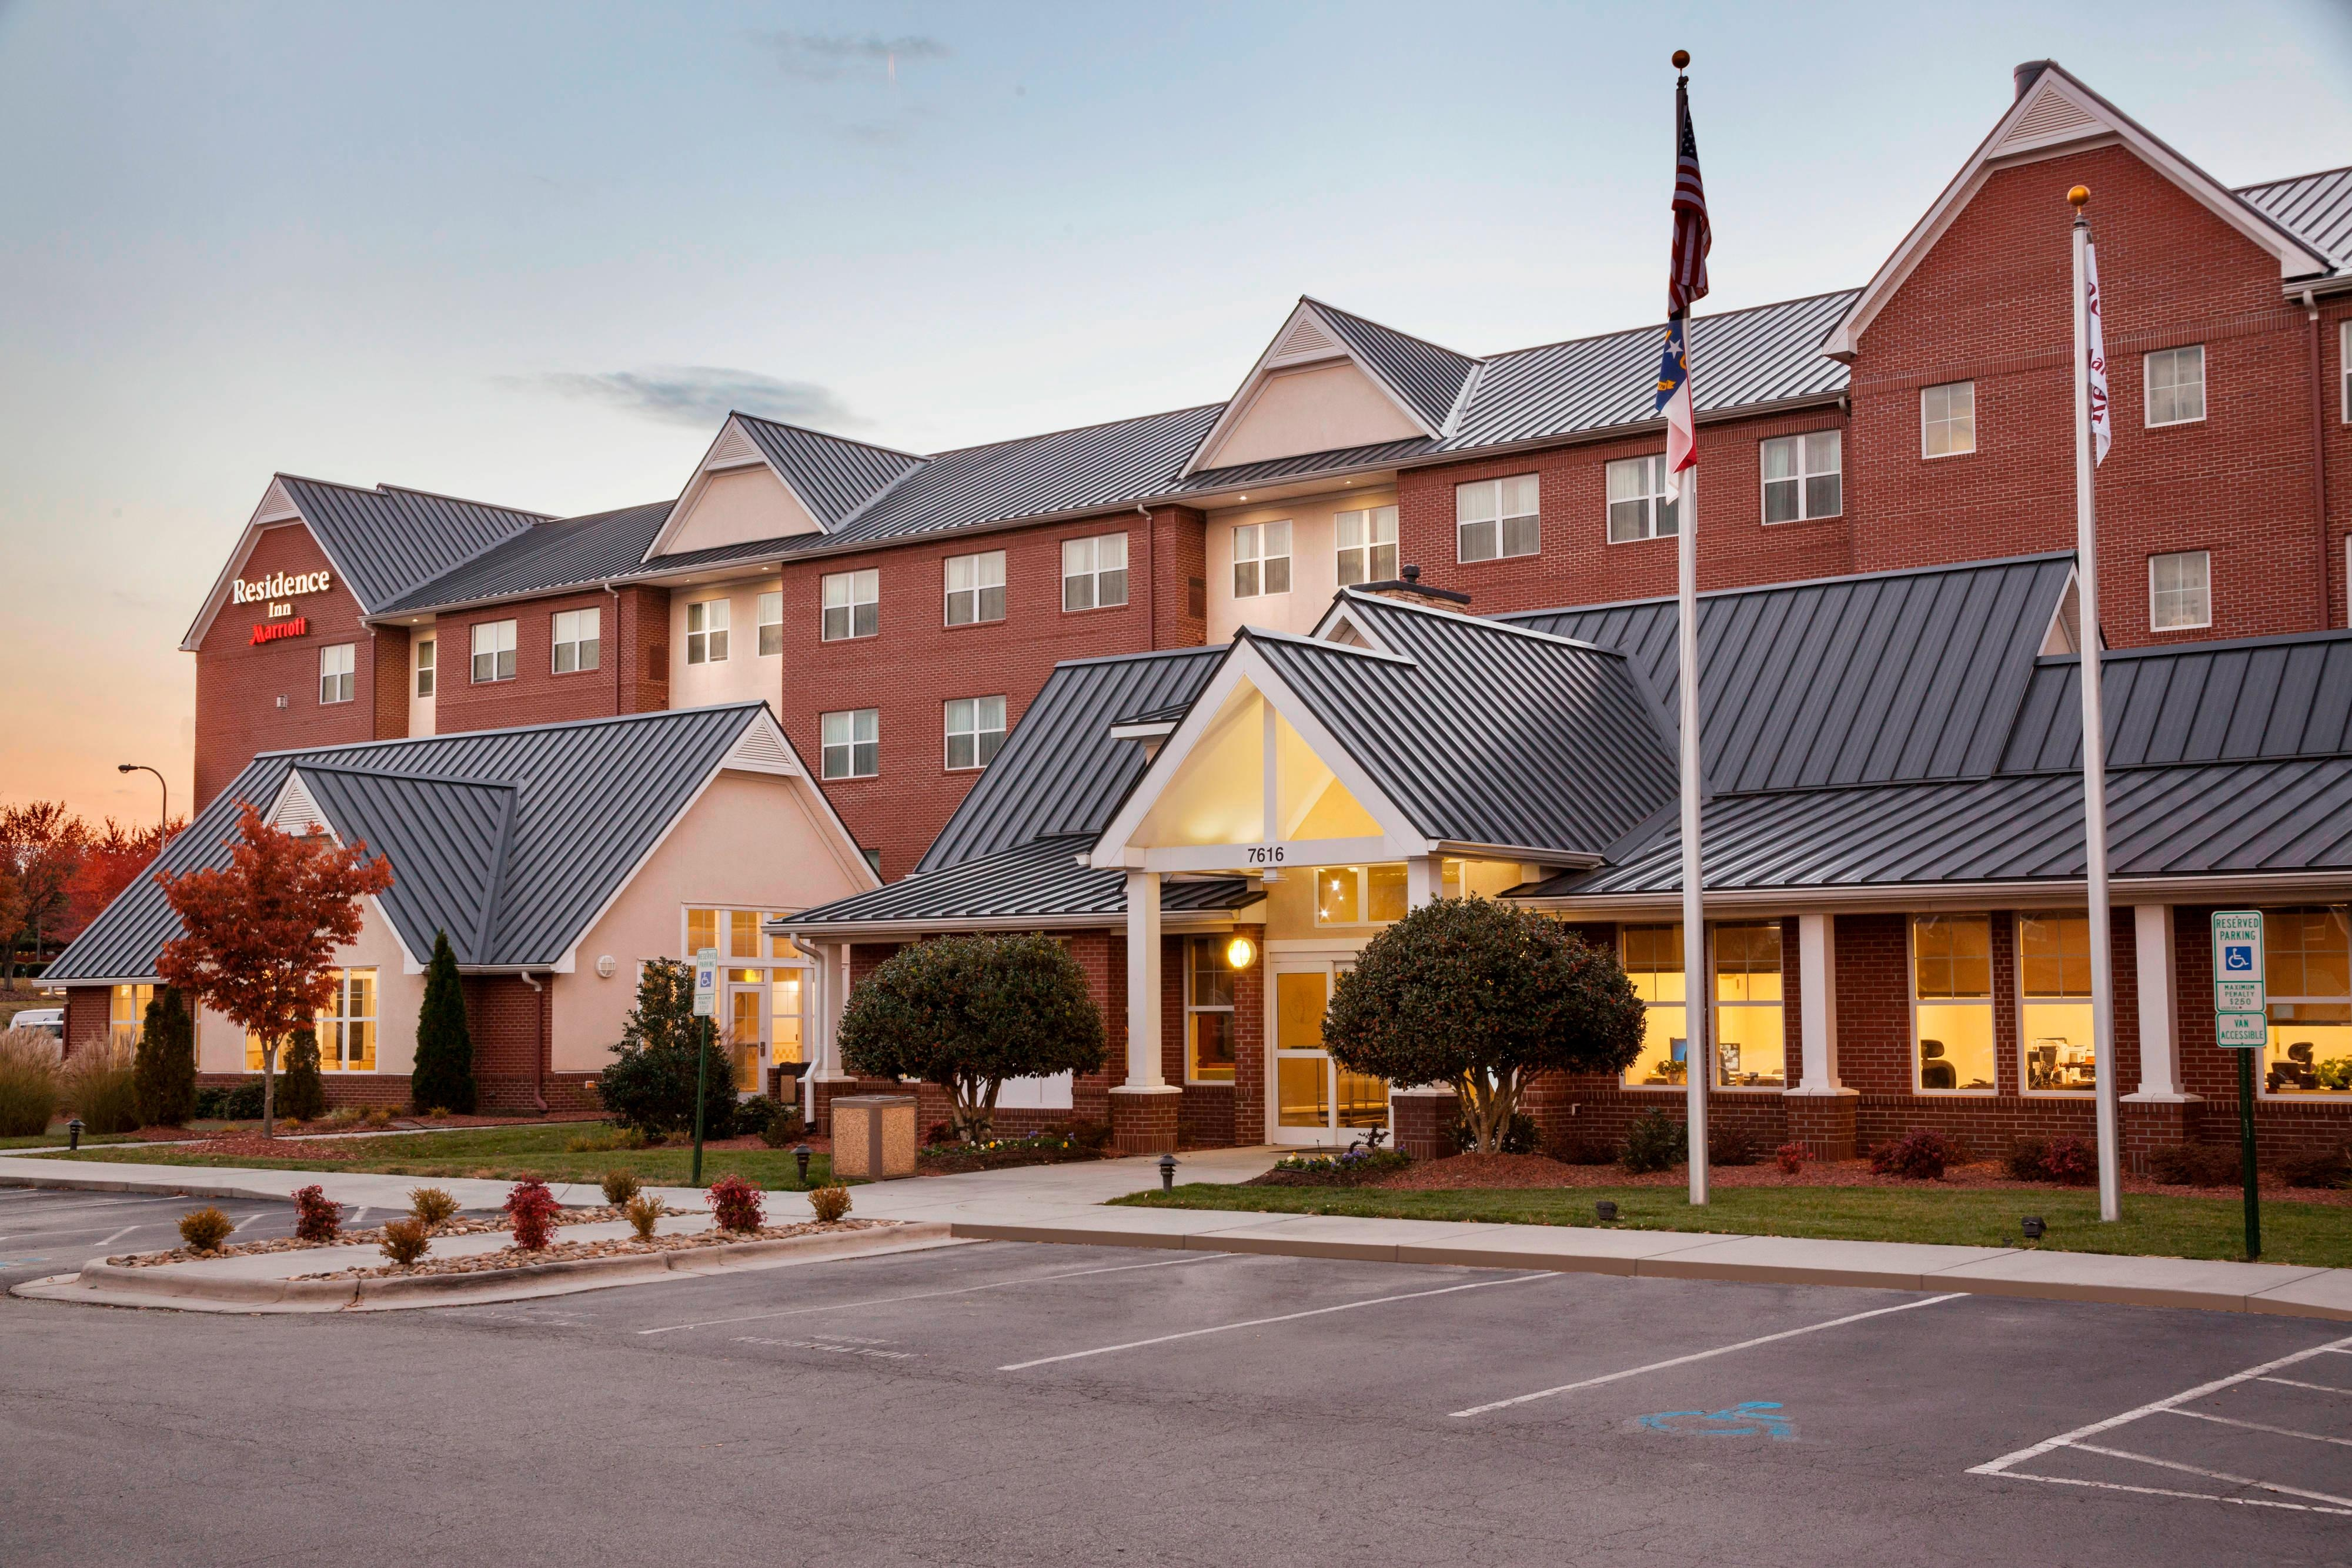 Residence Inn Greensboro Airport Entrance